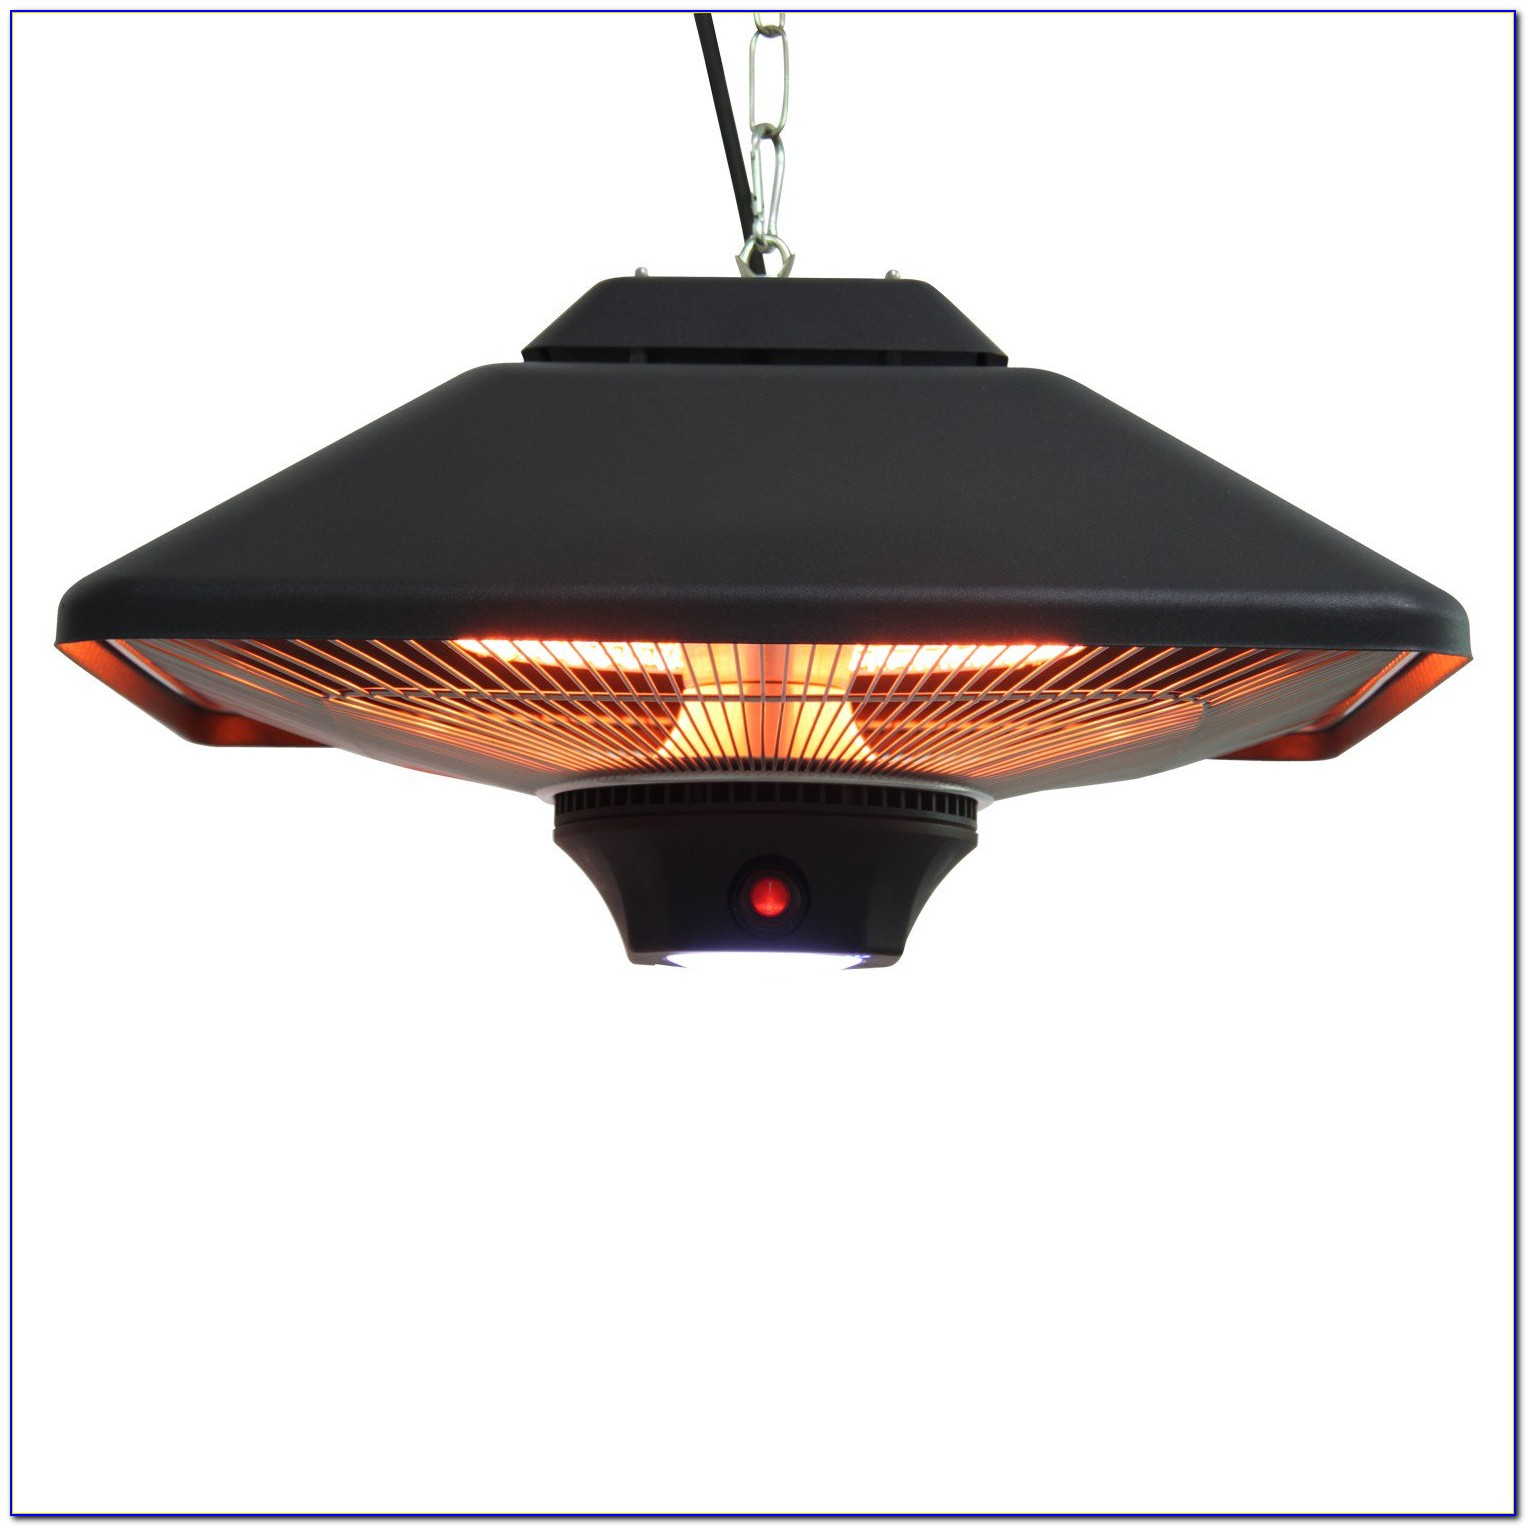 Flush Mounted Outdoor Ceiling Heaters